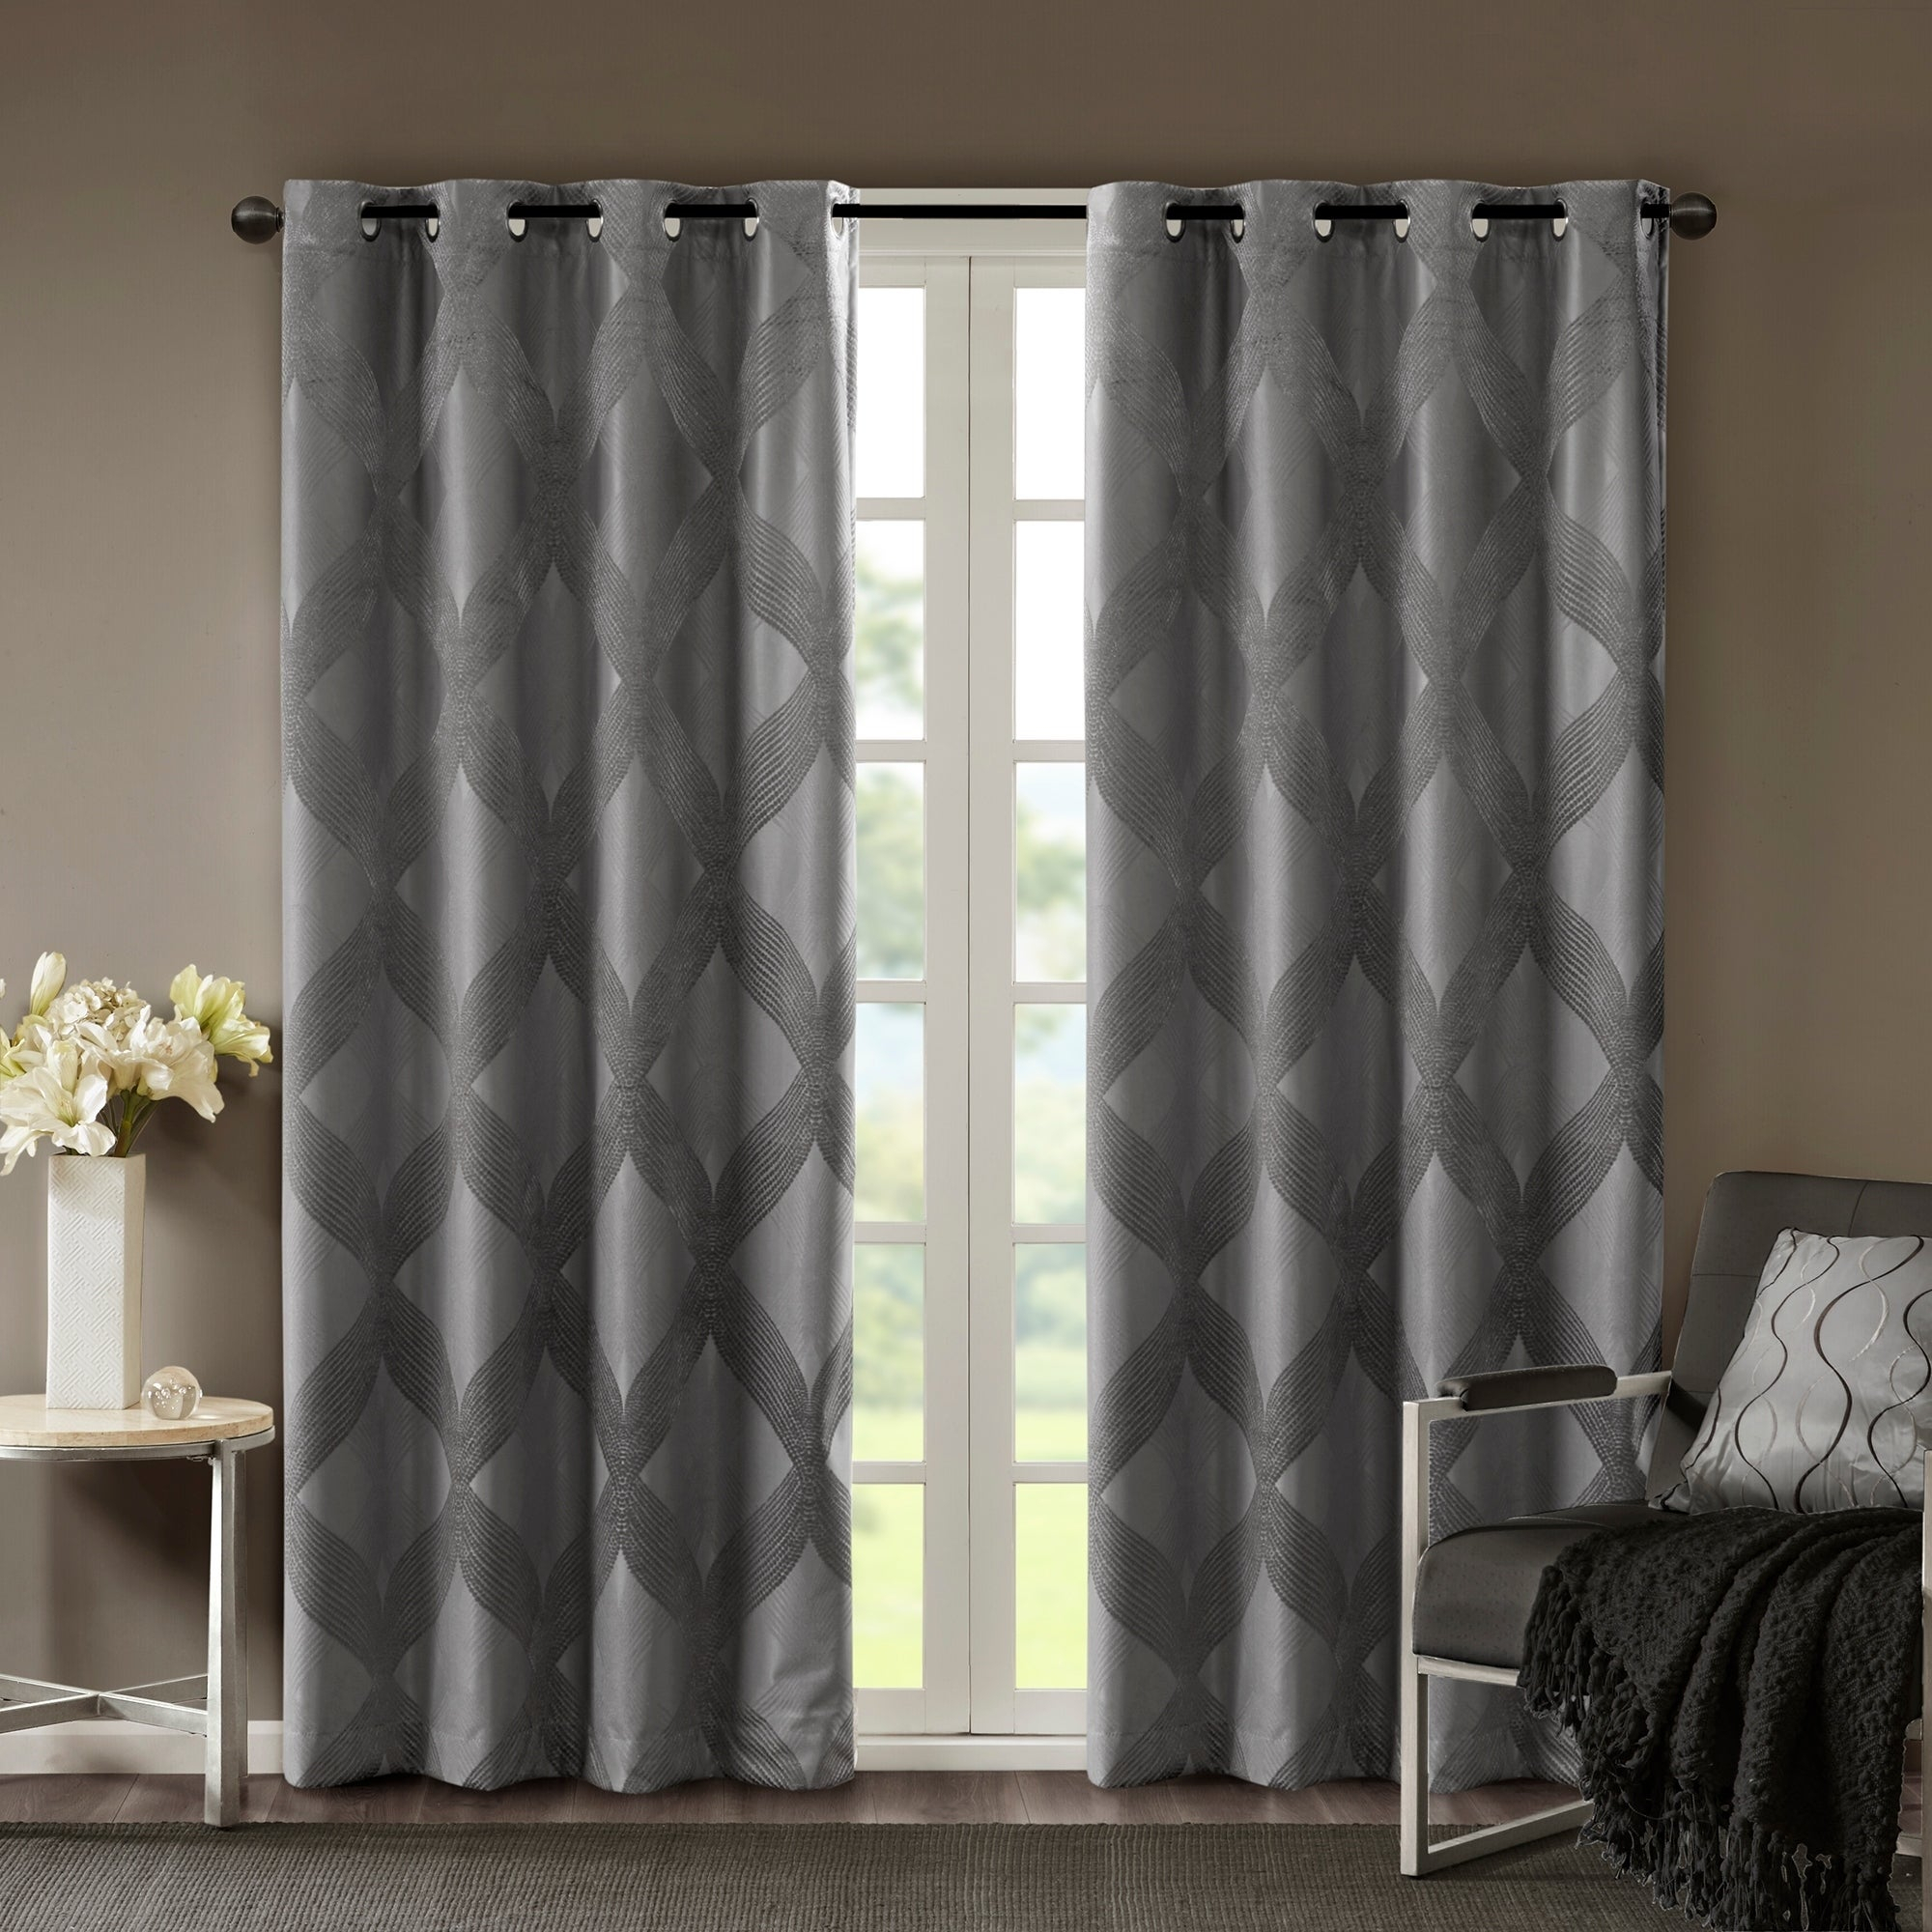 Sunsmart Abel Ogee Knitted Jacquard Total Blackout Curtain Panel With Regard To Sunsmart Abel Ogee Knitted Jacquard Total Blackout Curtain Panels (View 2 of 30)